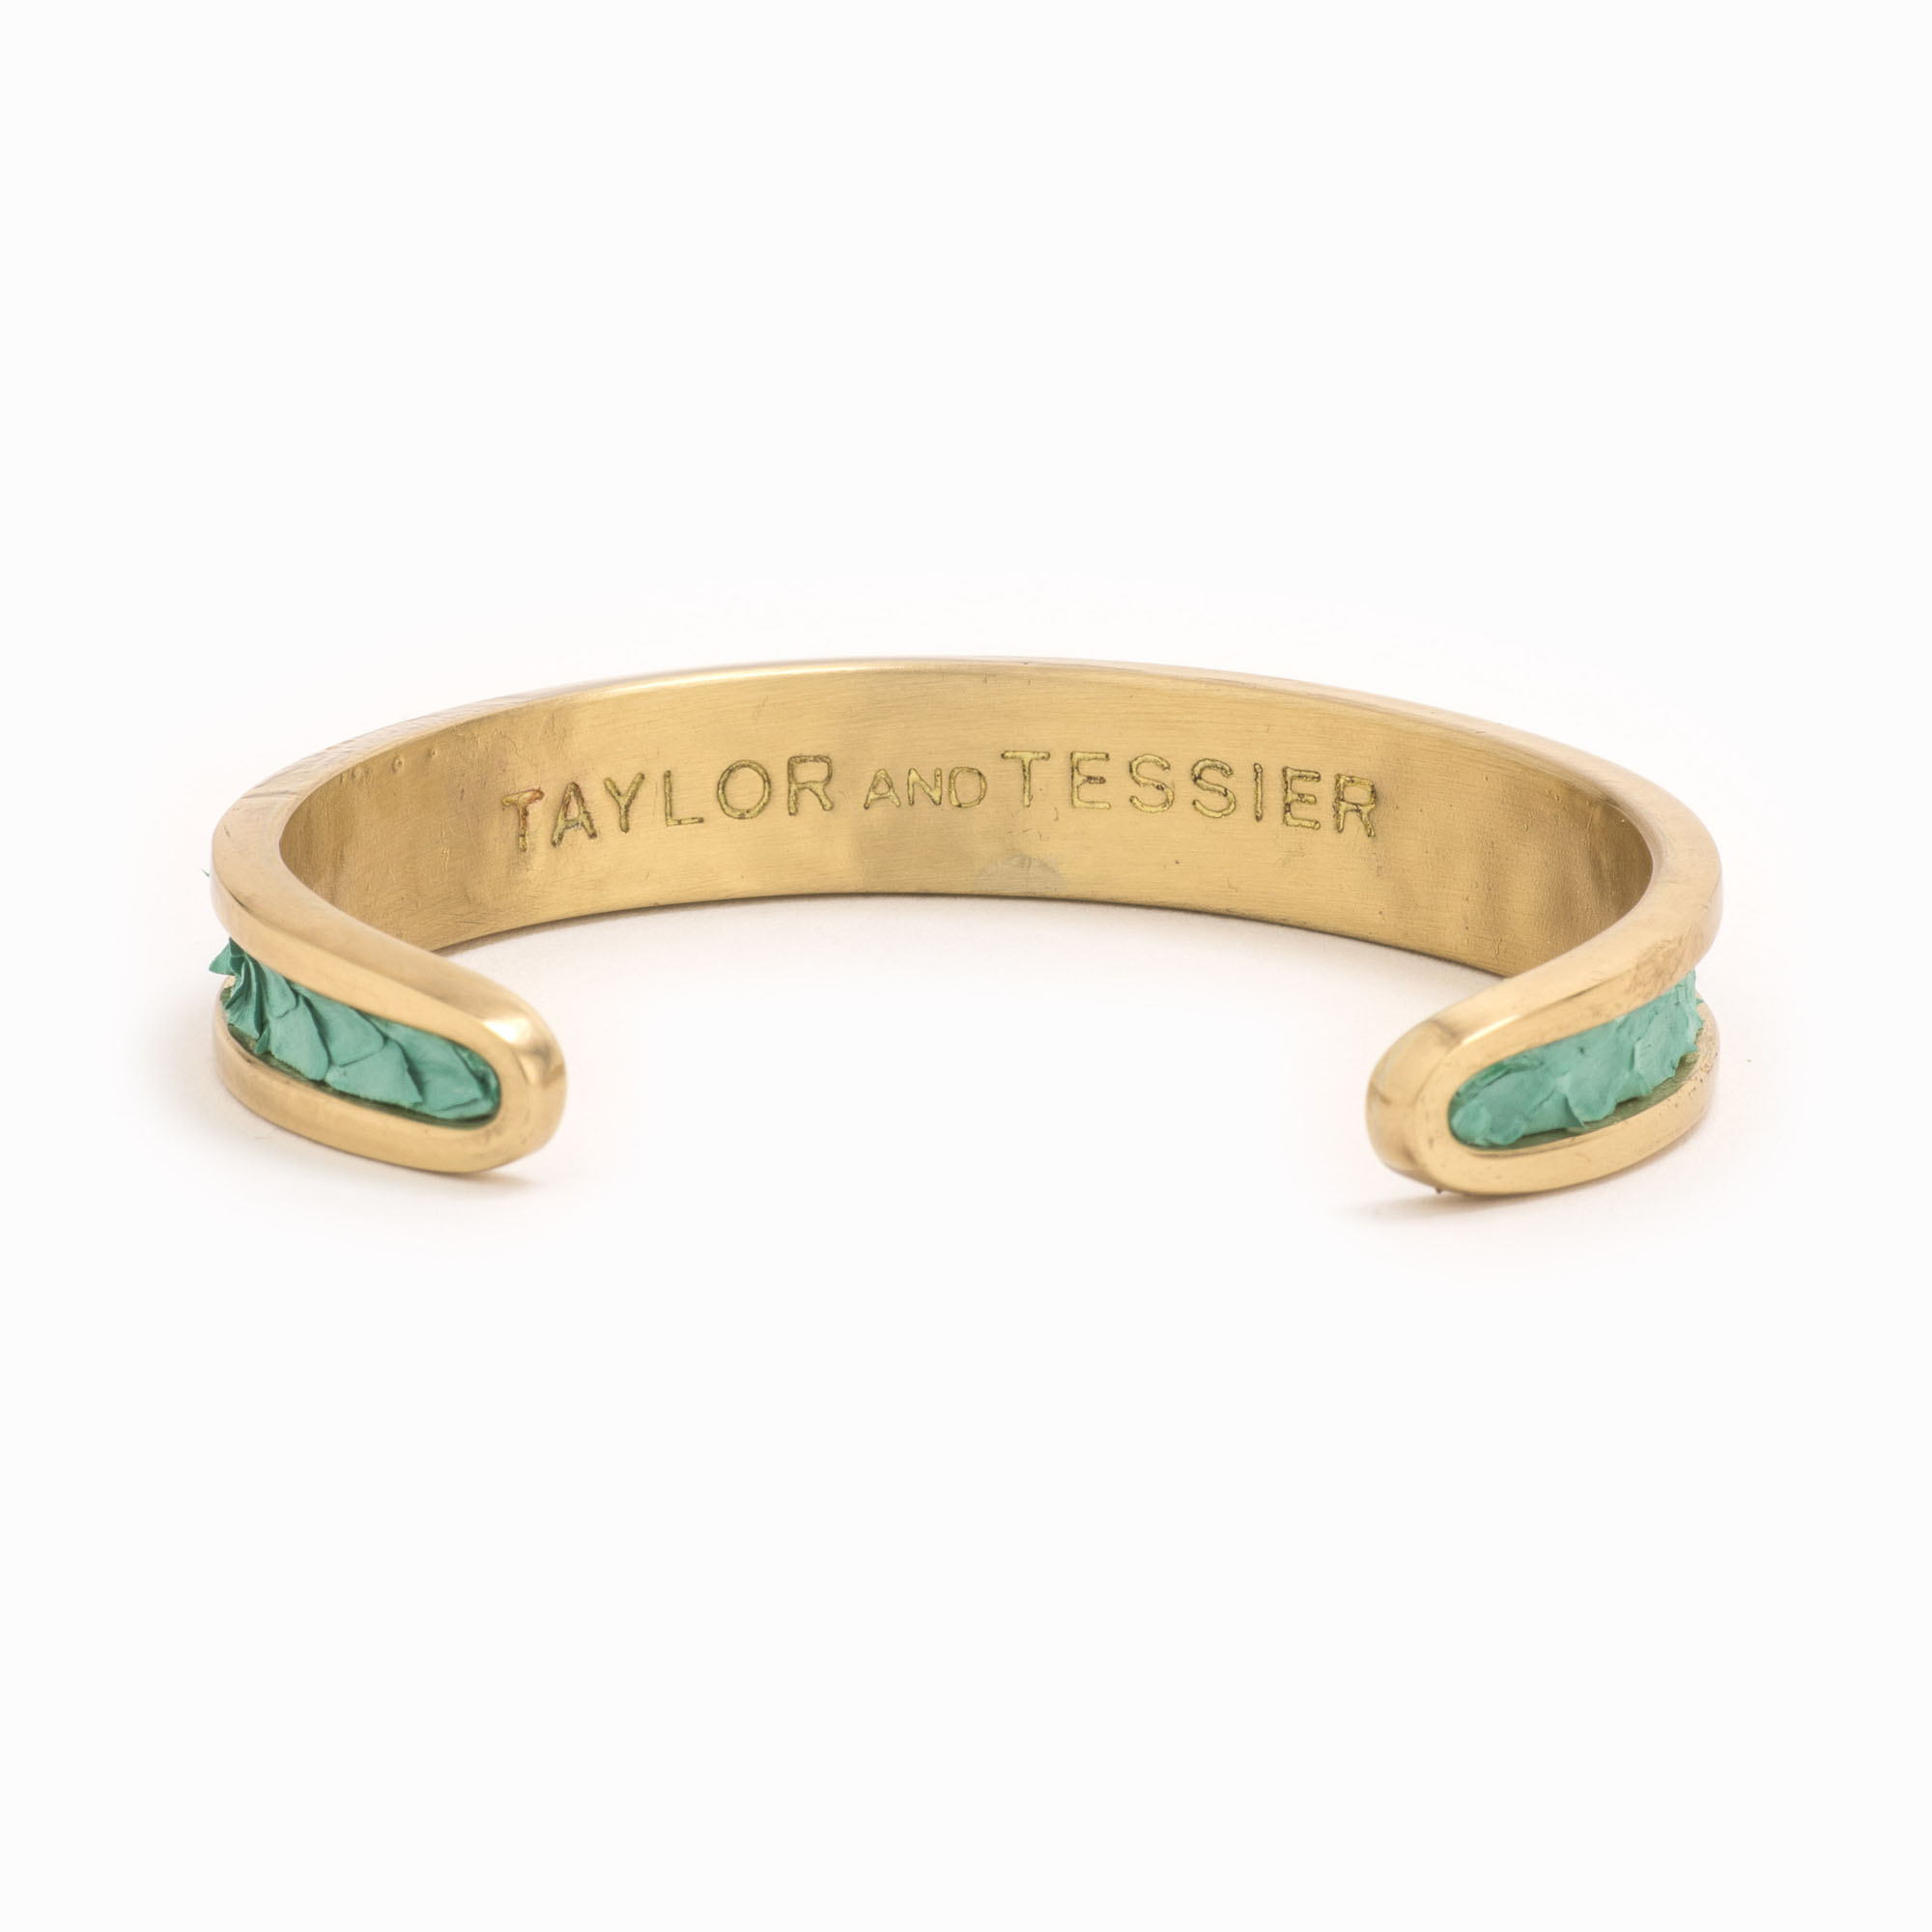 A small gold cuff with turquoise colored snakeskin pattern inlaid.